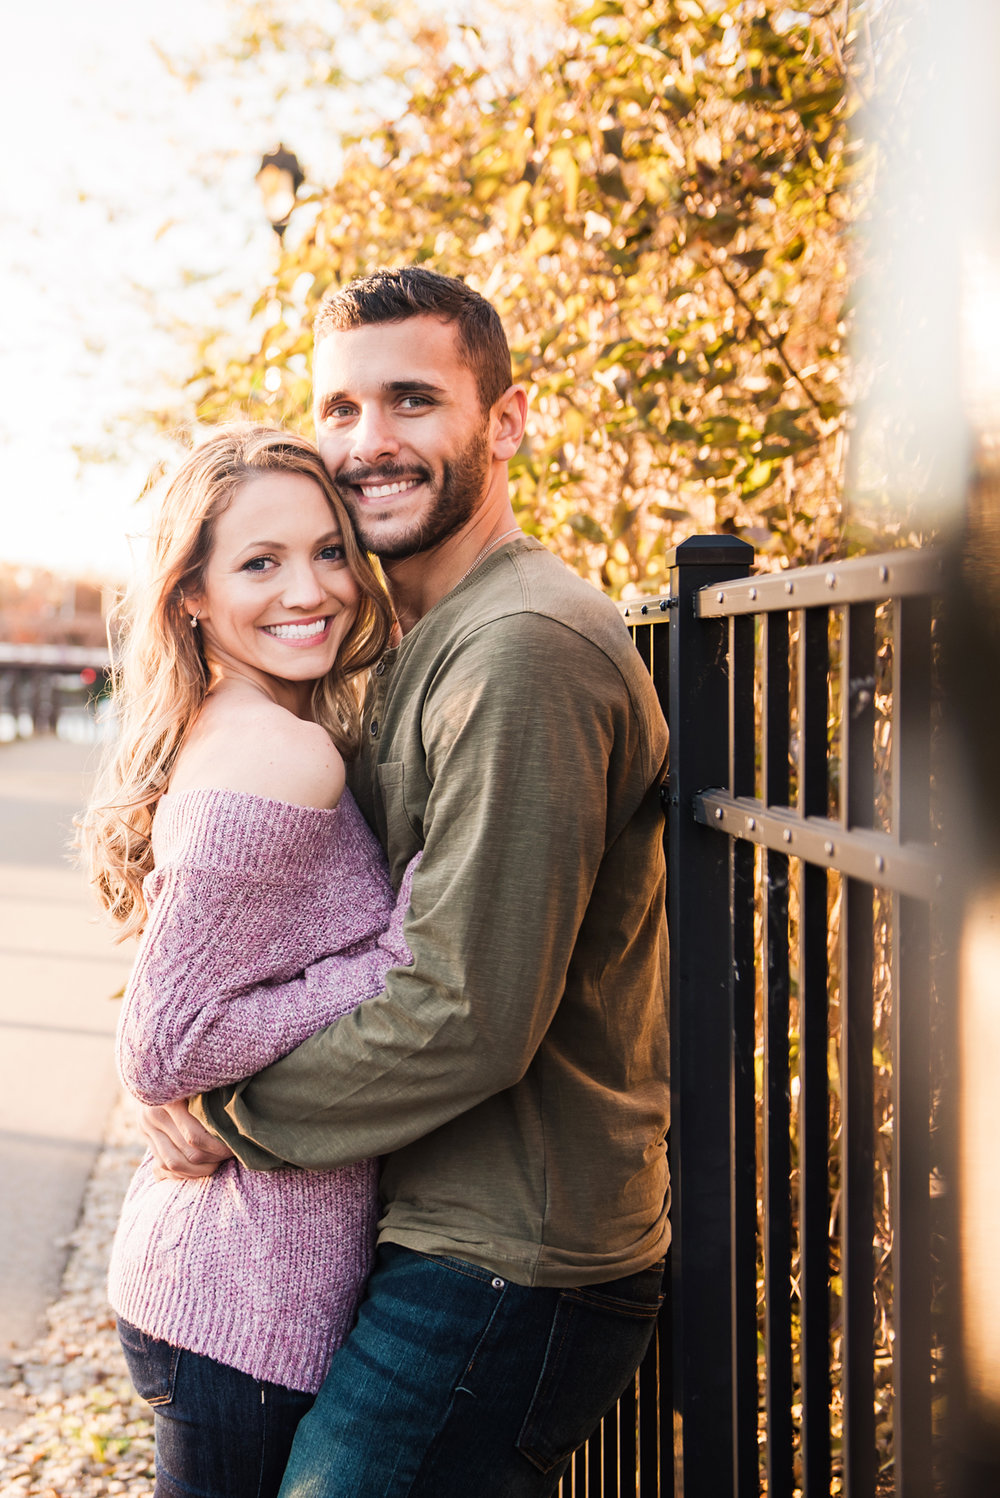 Village_of_Fairport_Rochester_Engagement_Session_JILL_STUDIO_Rochester_NY_Photographer_DSC_8611.jpg